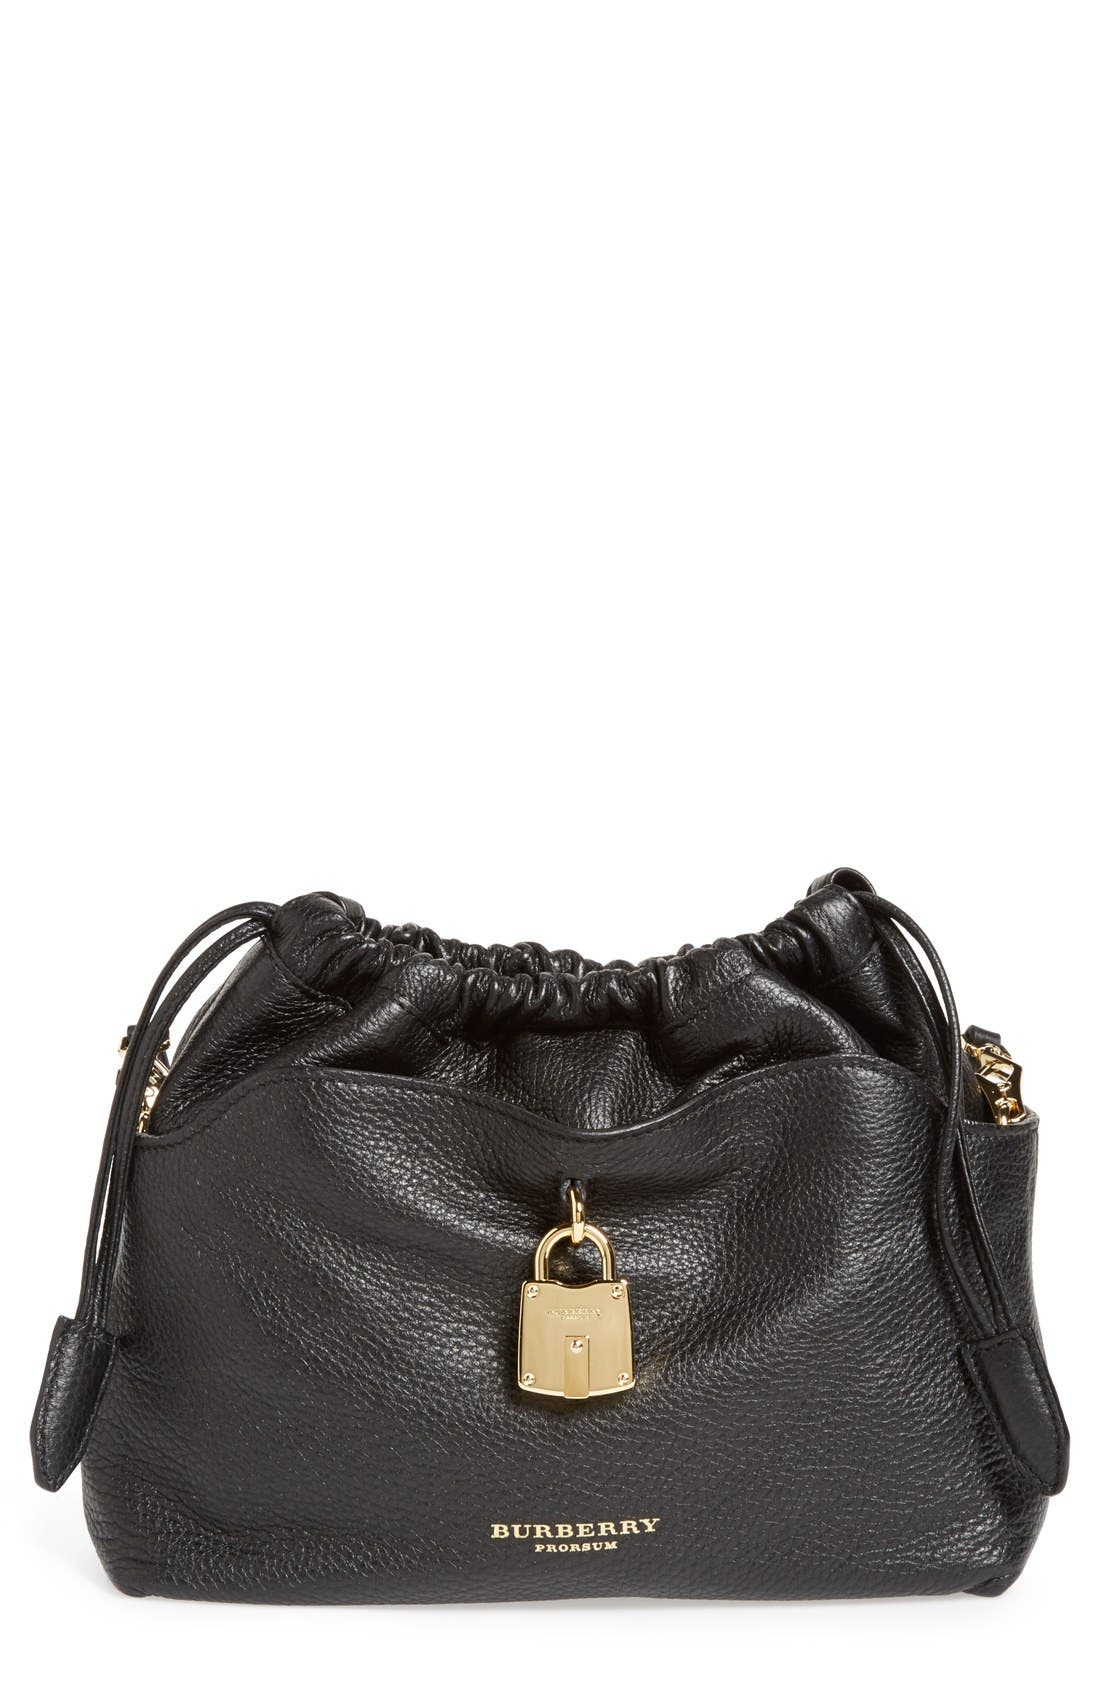 Alternate Image 1 Selected - Burberry 'Little Crush' Crossbody Bag